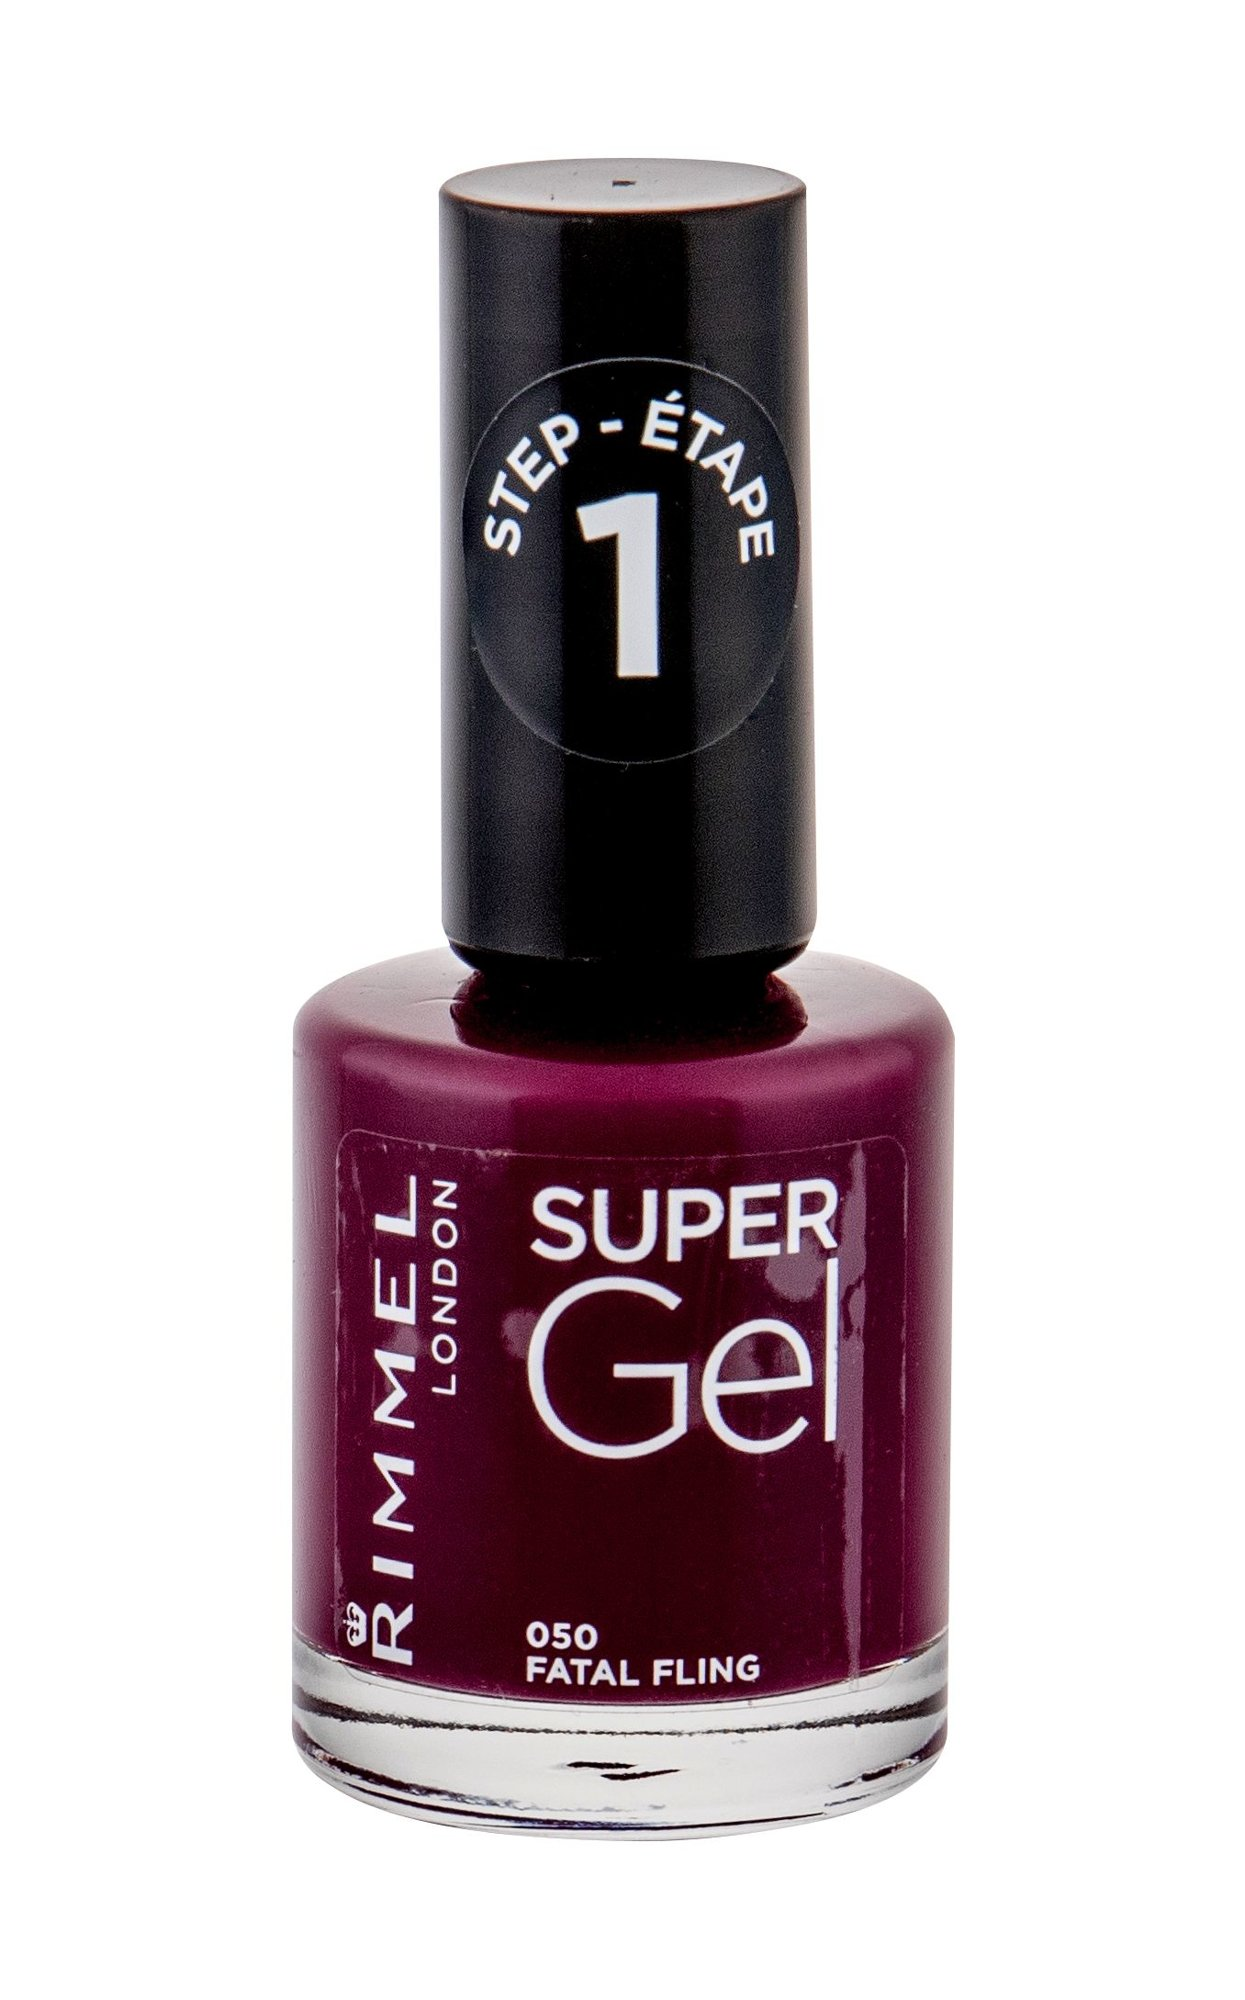 Rimmel London Super Gel Step1 050 Fatal Fling Lak Na Nechty 12ml Parfumela Sk